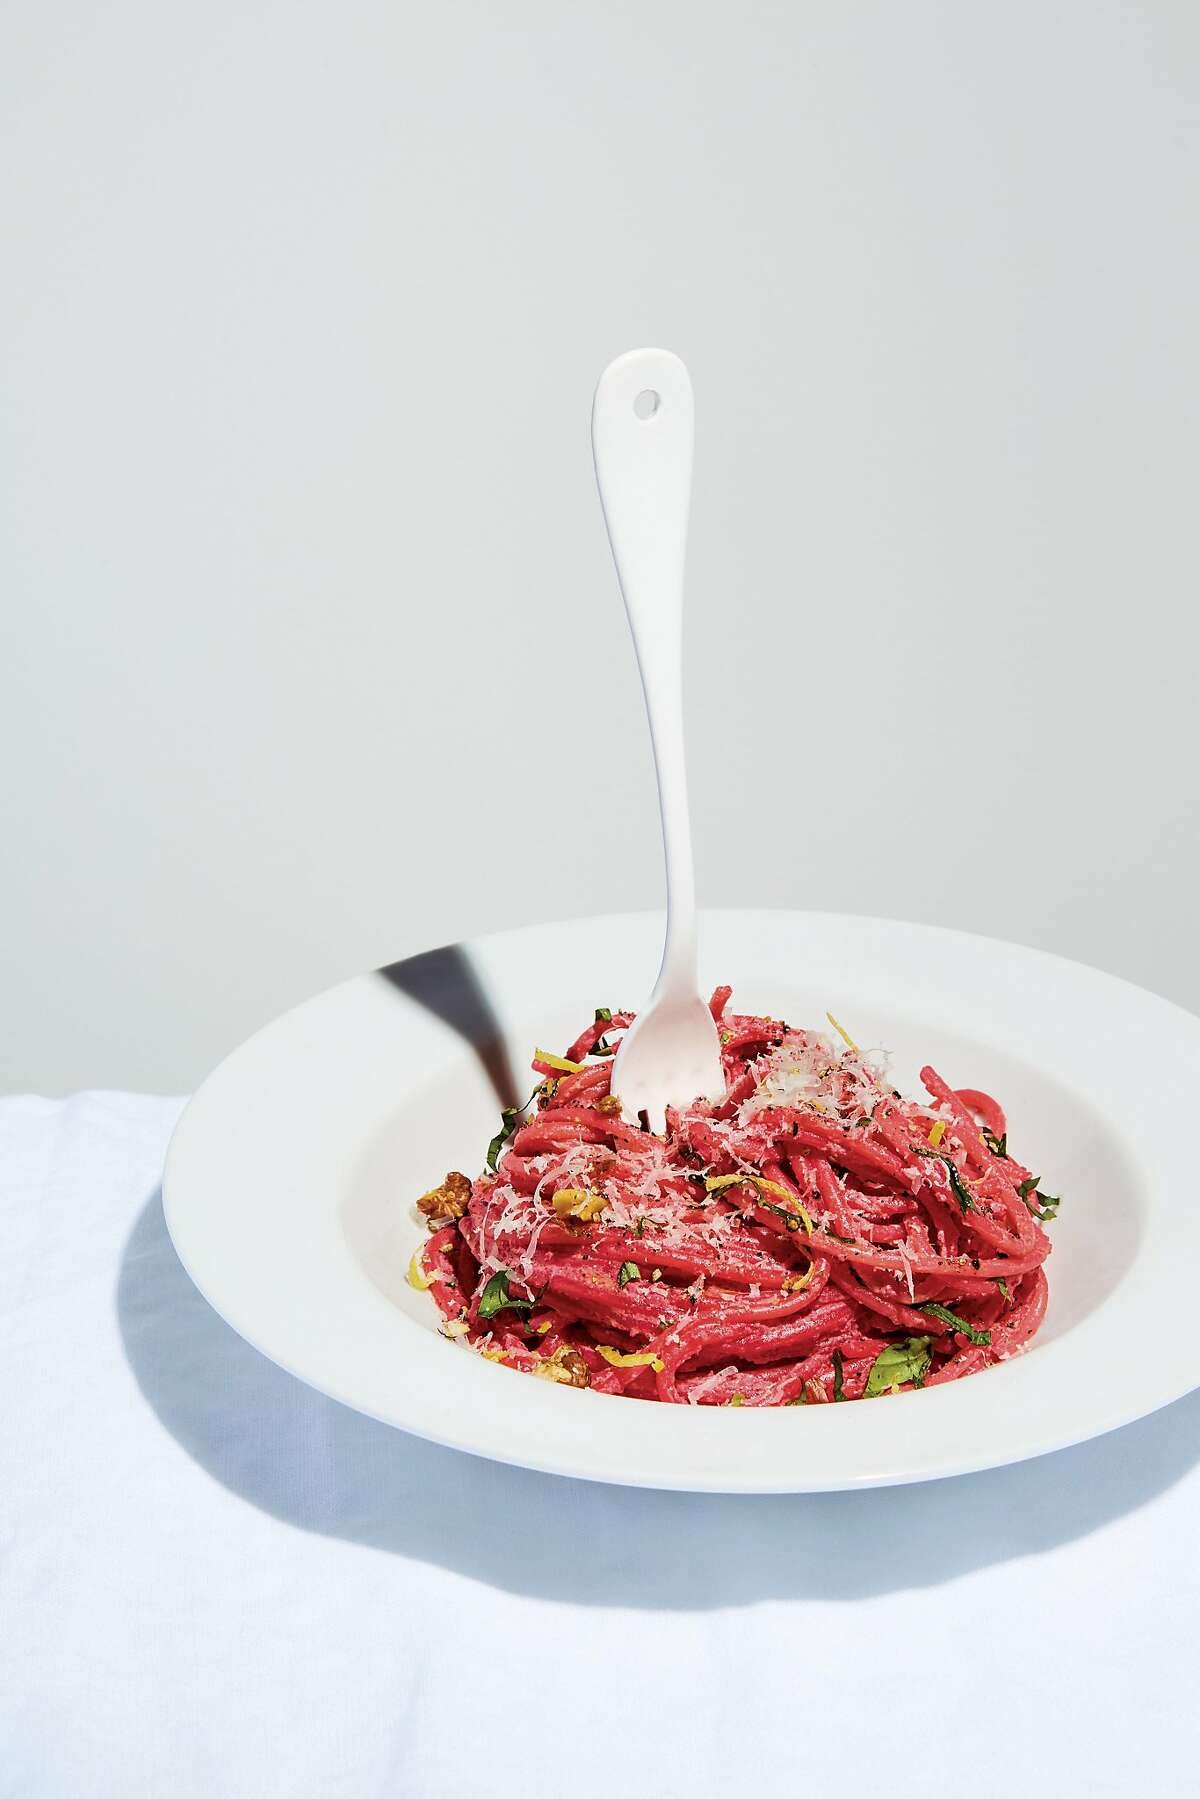 Elettra Wiedemann's Pink spaghetti from �Cherry Bombe: The Cookbook� edited by Kerry Diamond and Claudia Wu (Clarkson Potter; 256 pages; $35)